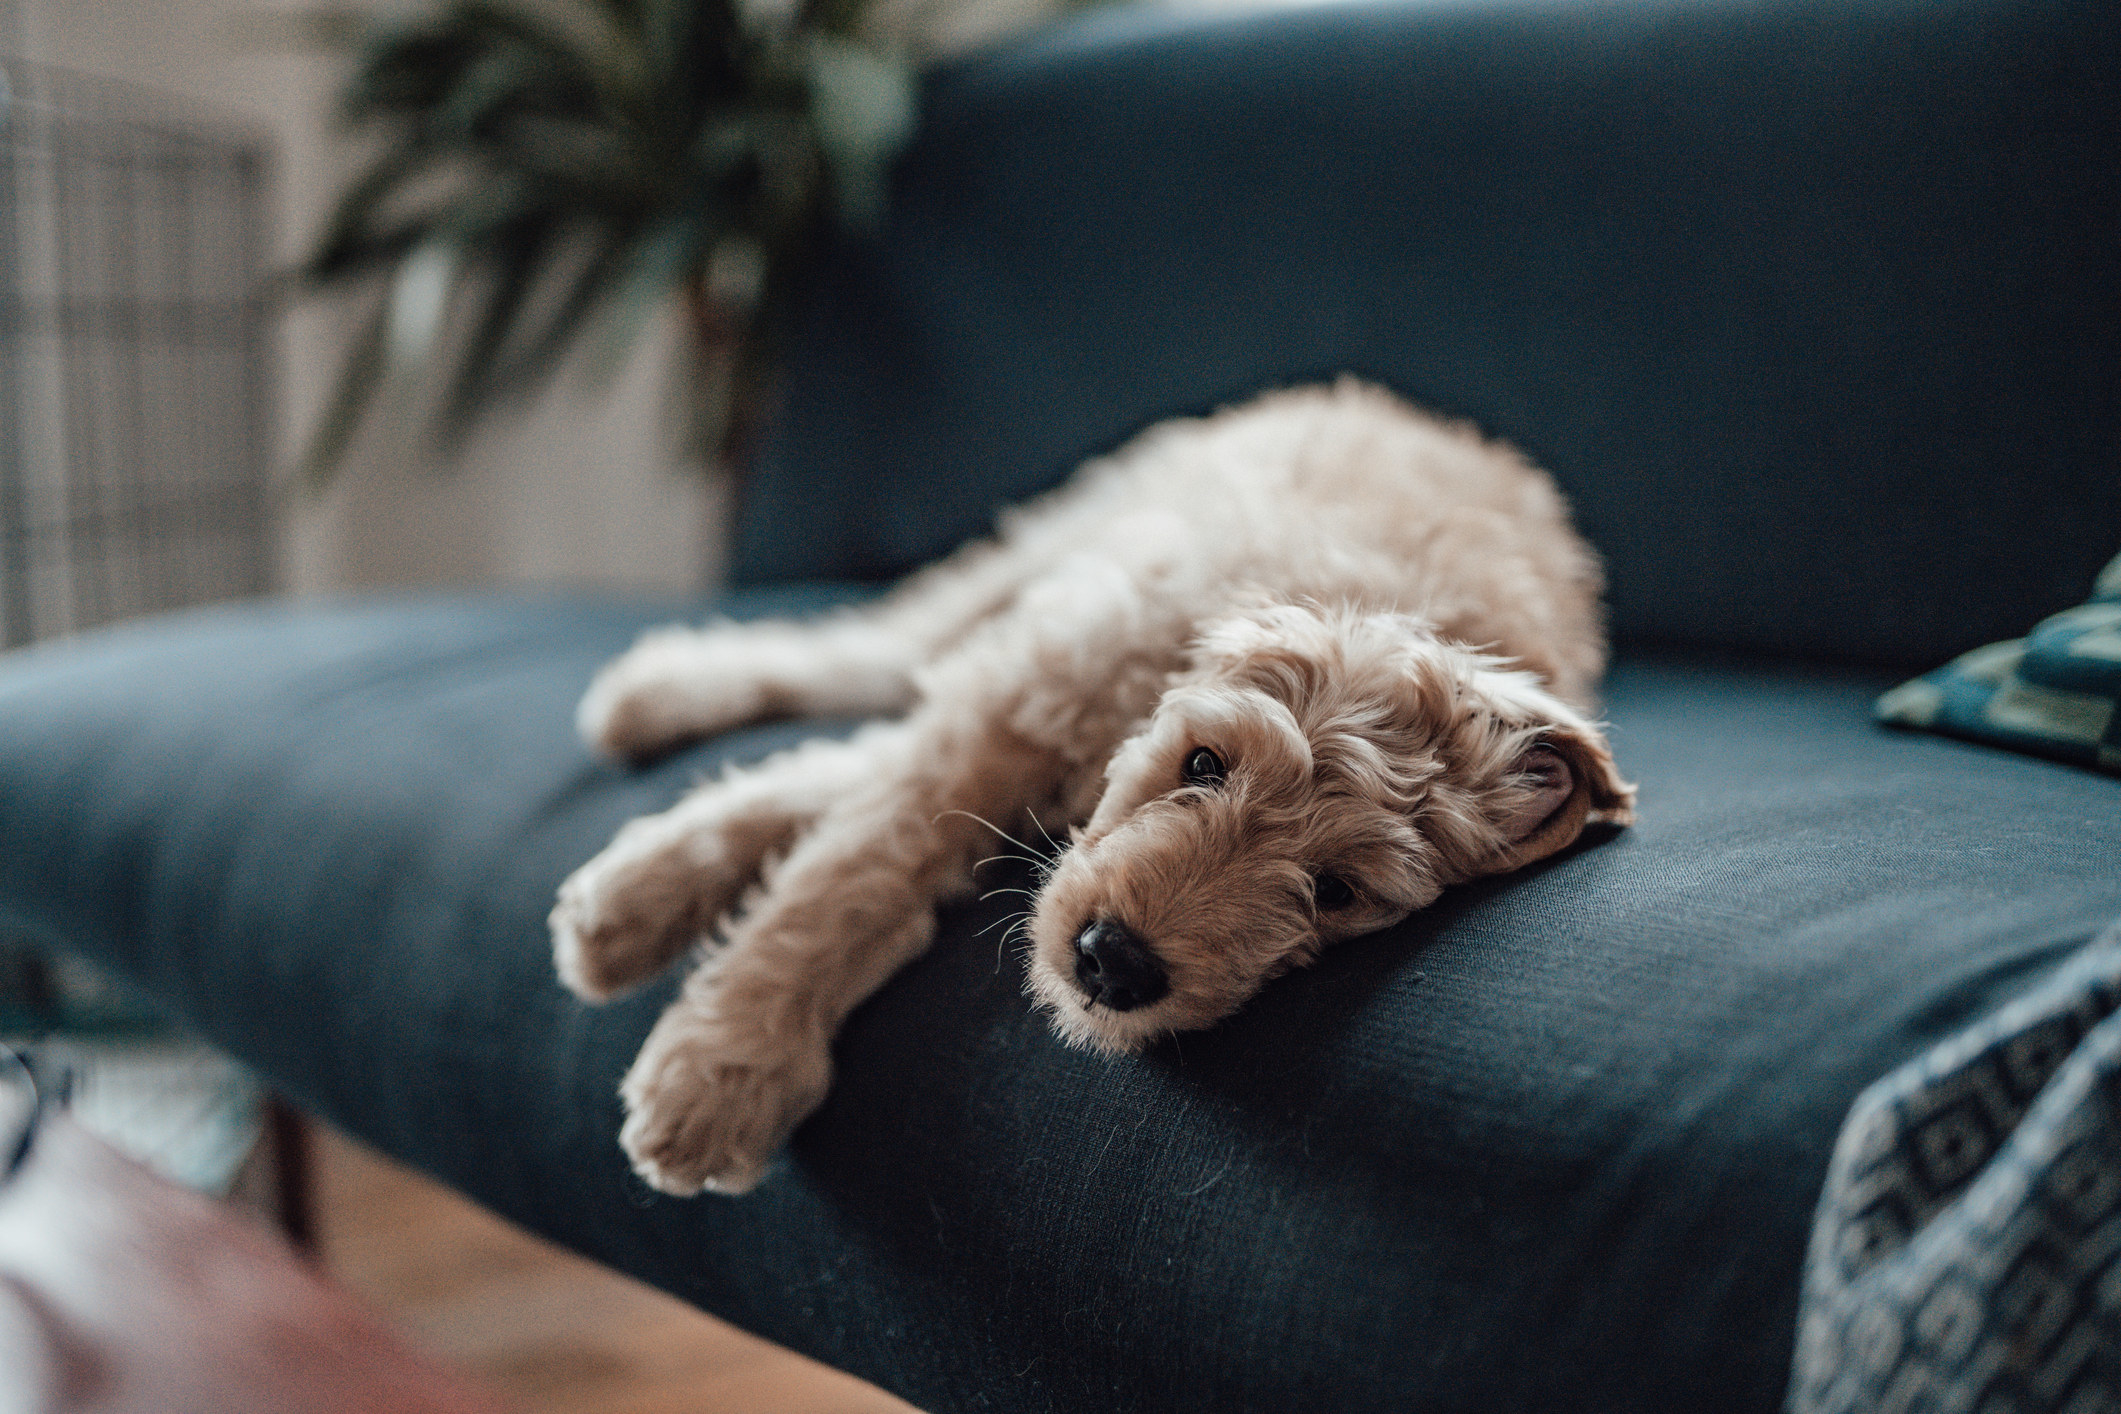 goldendoodle resting on a sofa looking at camera